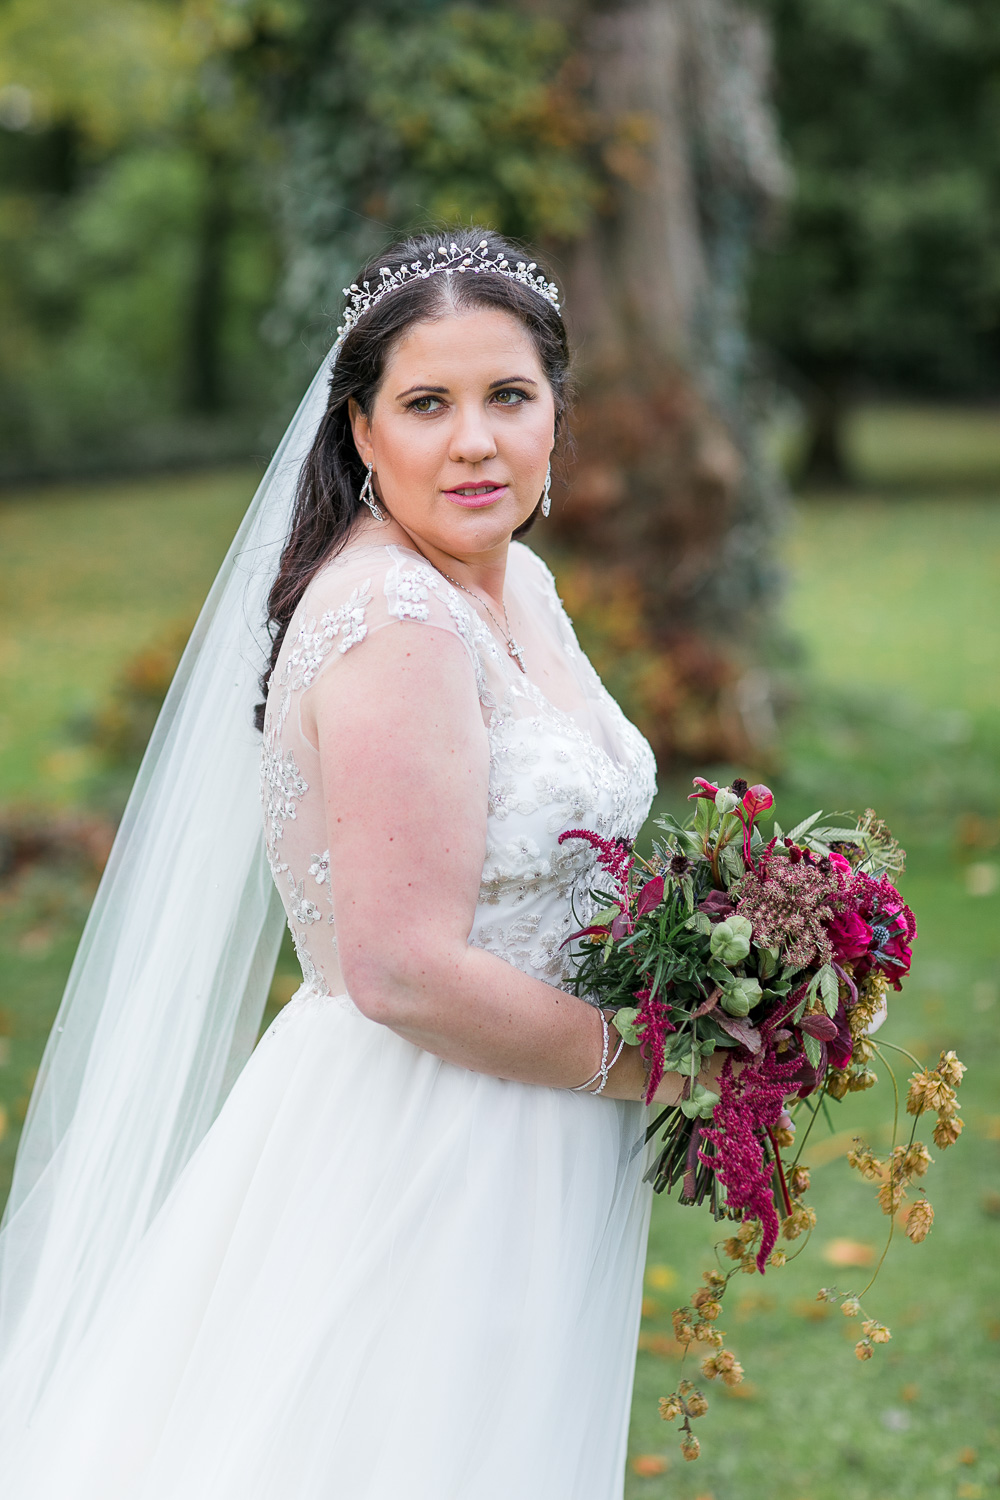 Bride looking into the camera holding the flowers with her chest facing to the right